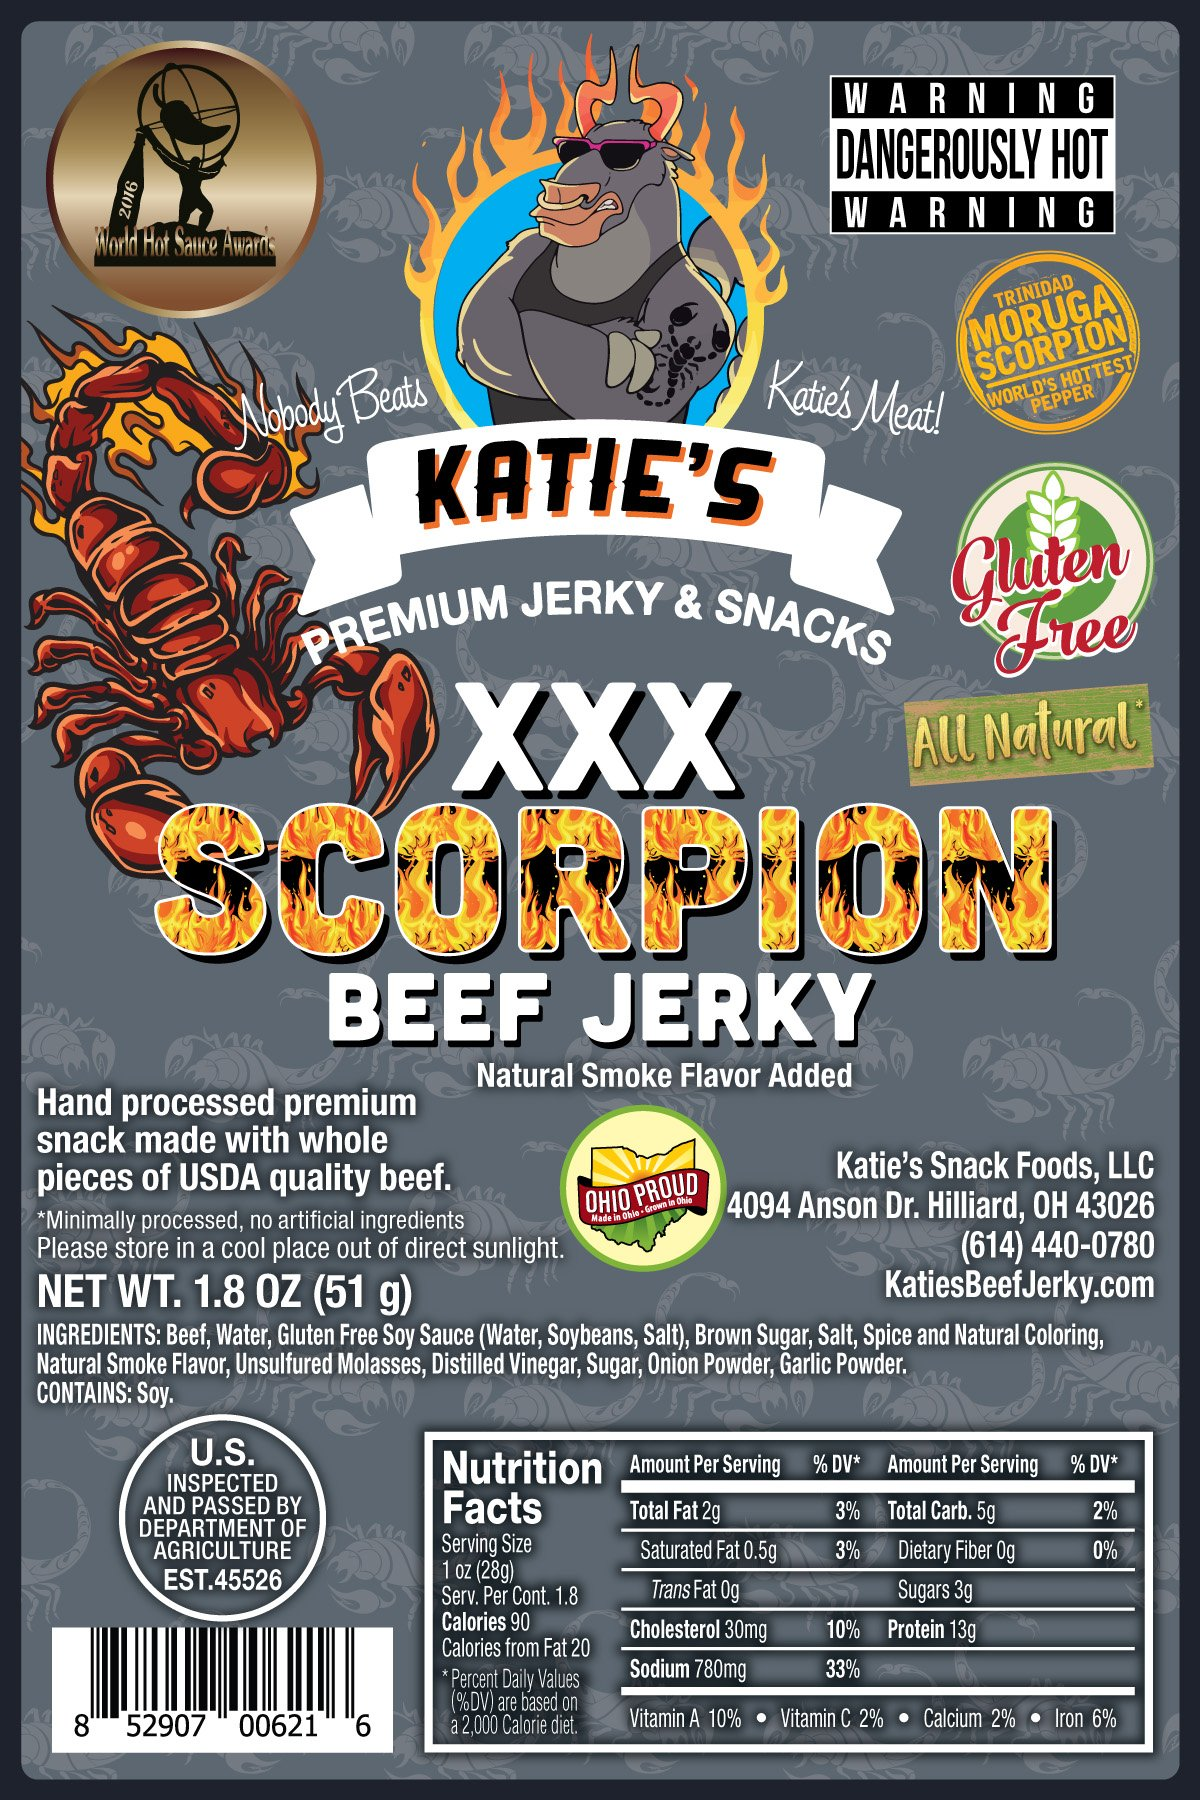 Scorpion XXX Beef Jerky (Trinidad Moruga Scorpion) GLUTEN FREE, All Natural, Hottest in the World